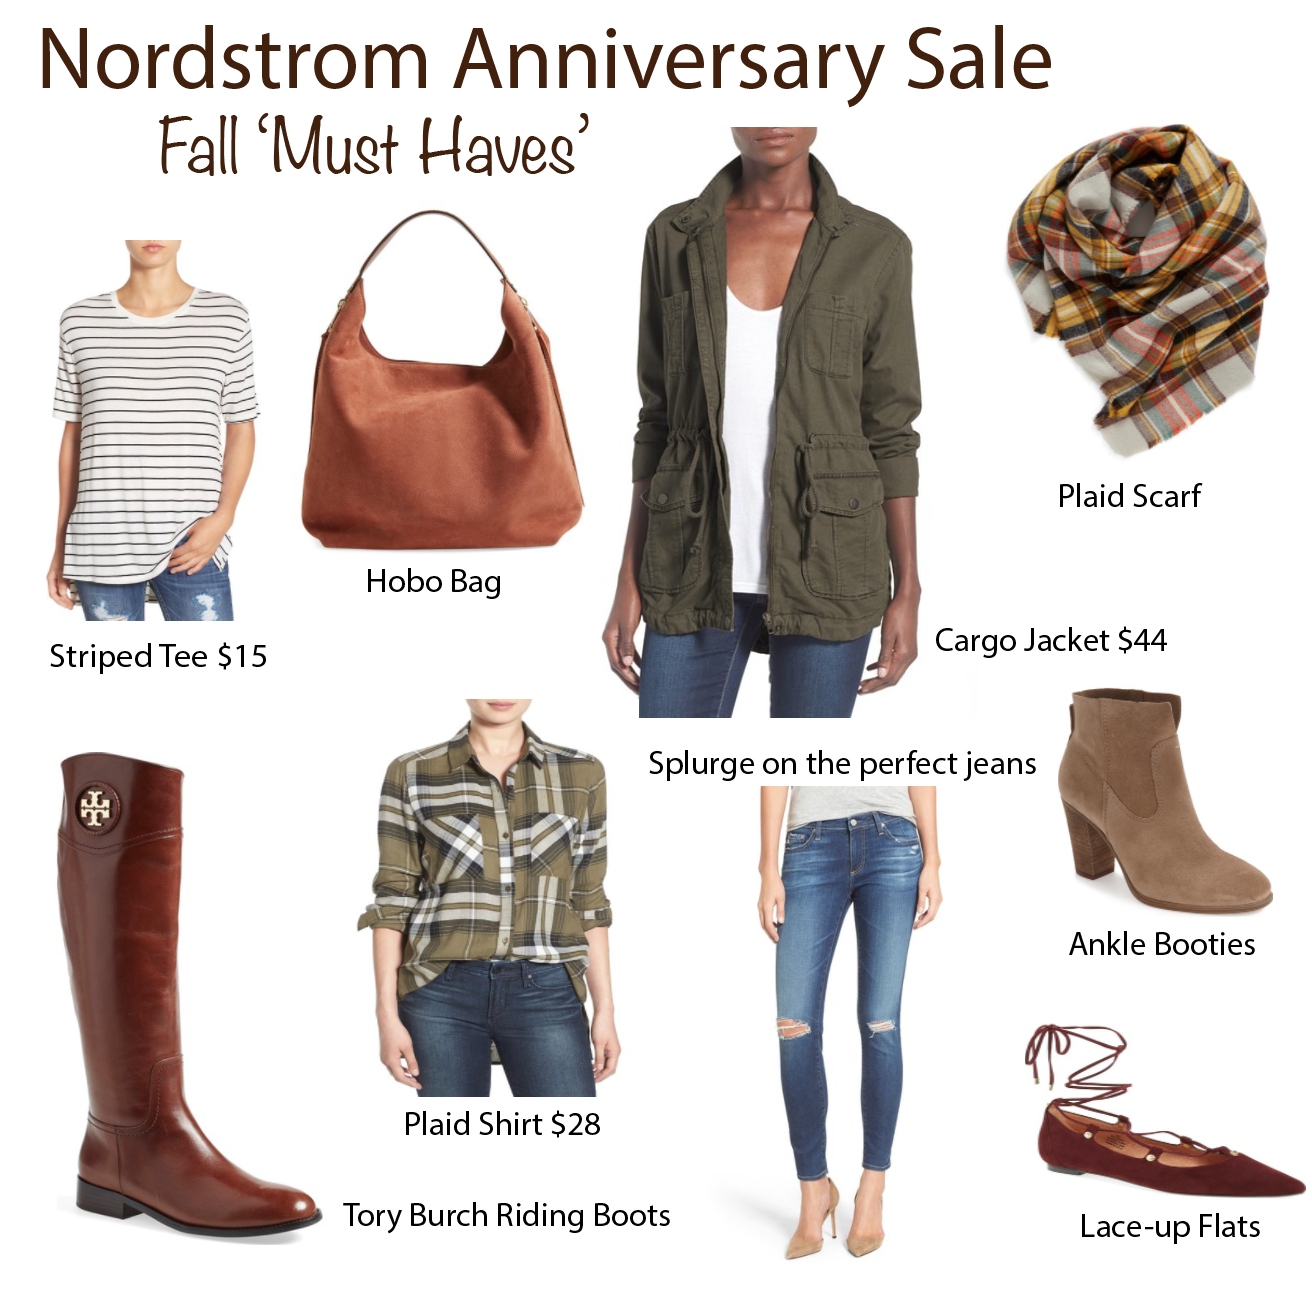 nordstrom anniversary sale 2016 fall must haves and promos mrscasual fashion blog